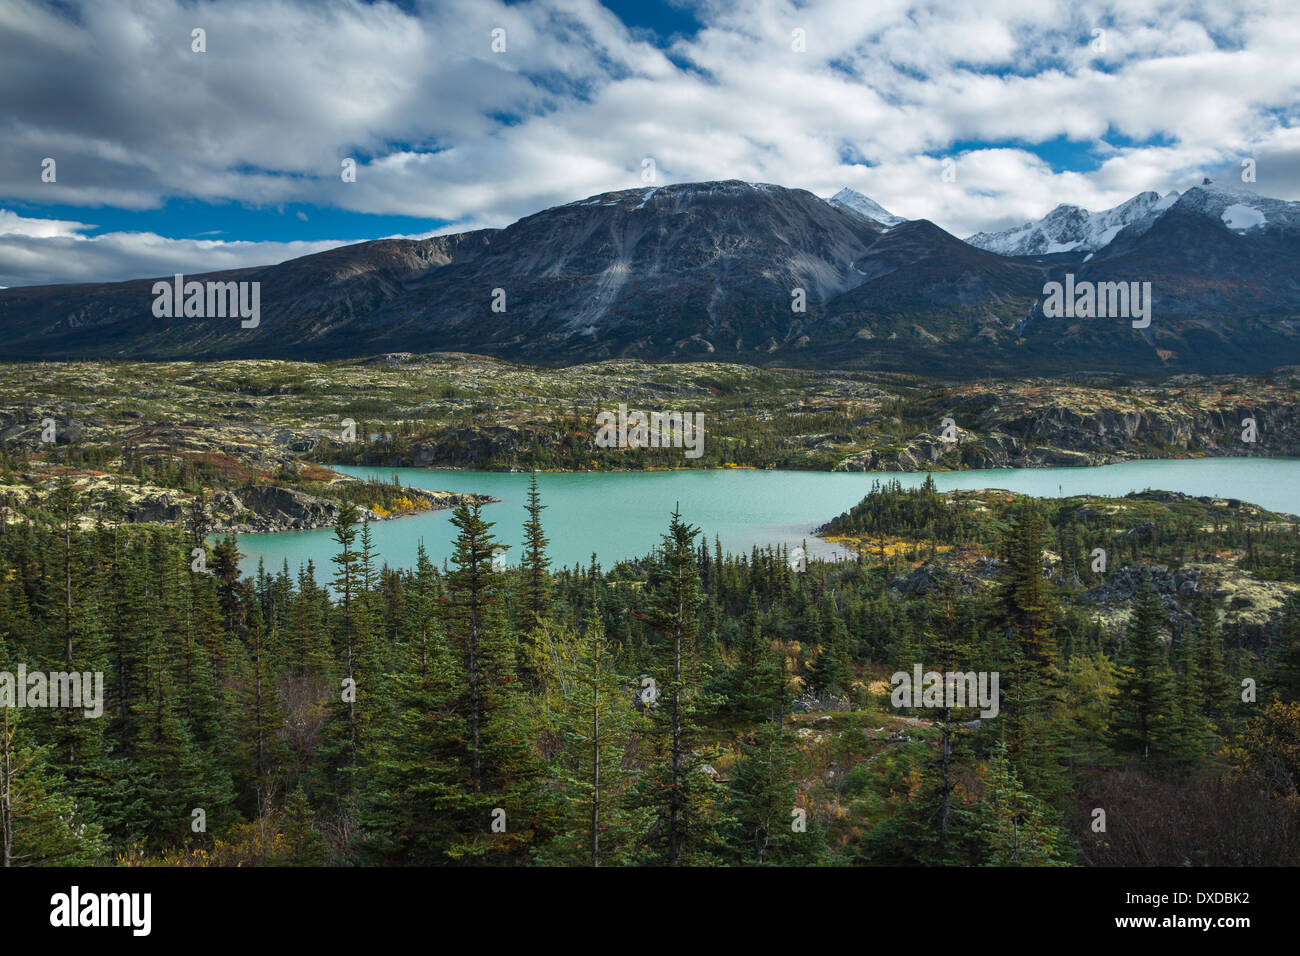 Les alpages autour de Fraser, route du Klondike Sud, British Columbia, Canada Photo Stock